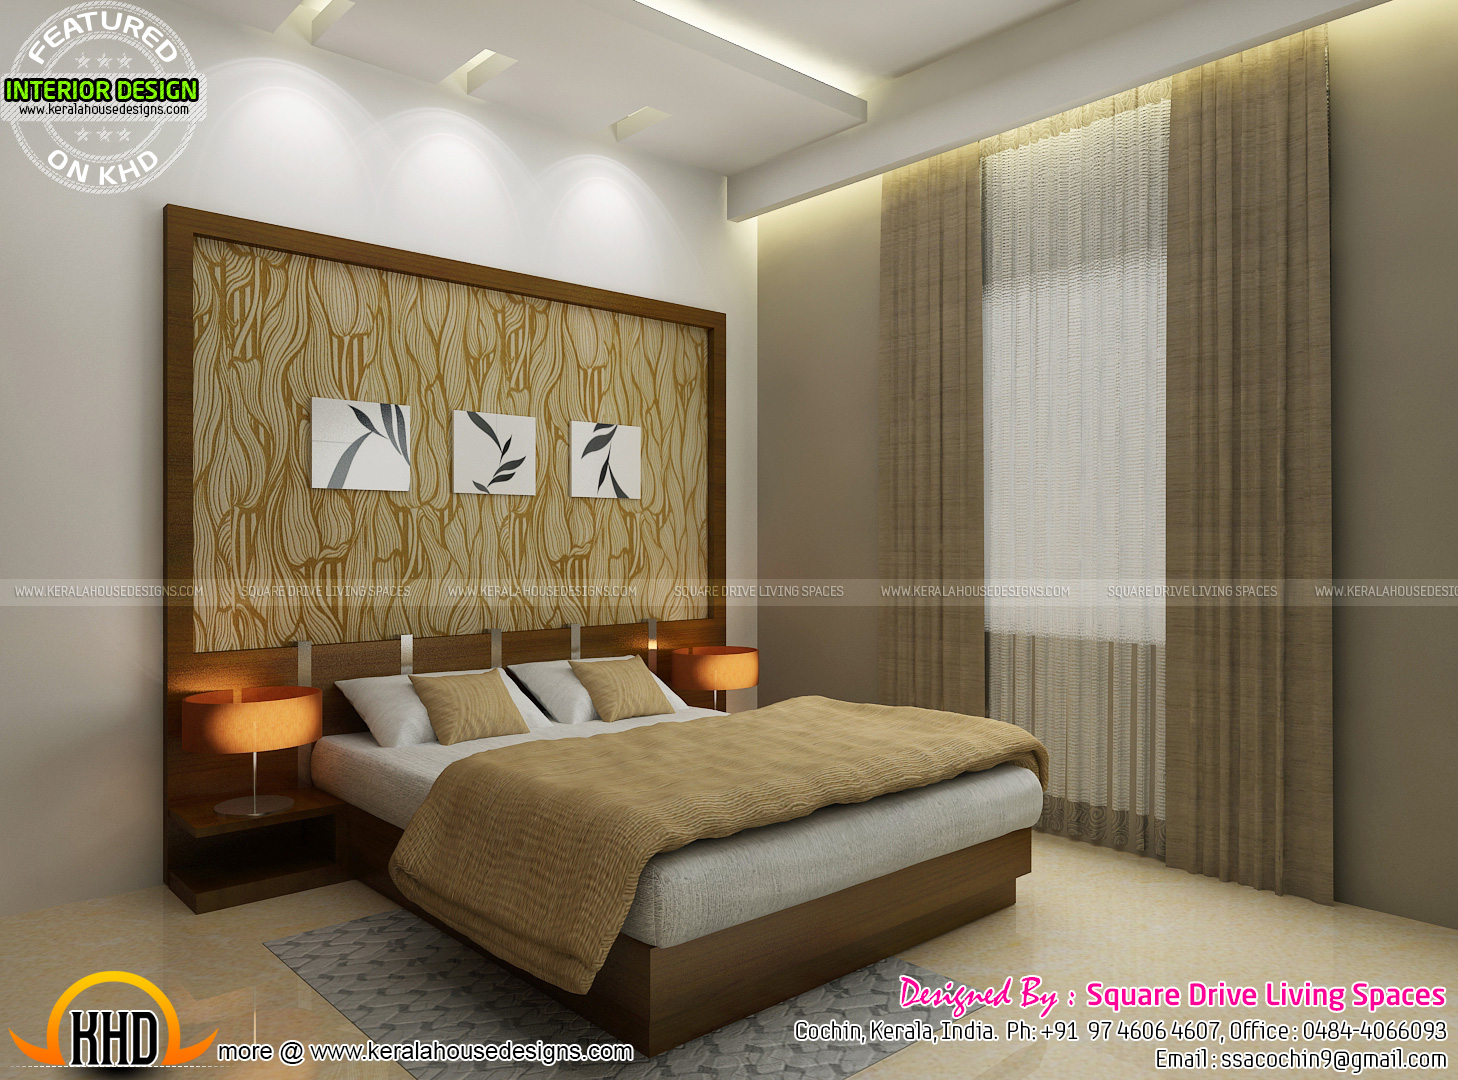 Interior designs of master bedroom living kitchen and for Interior designs for bed rooms